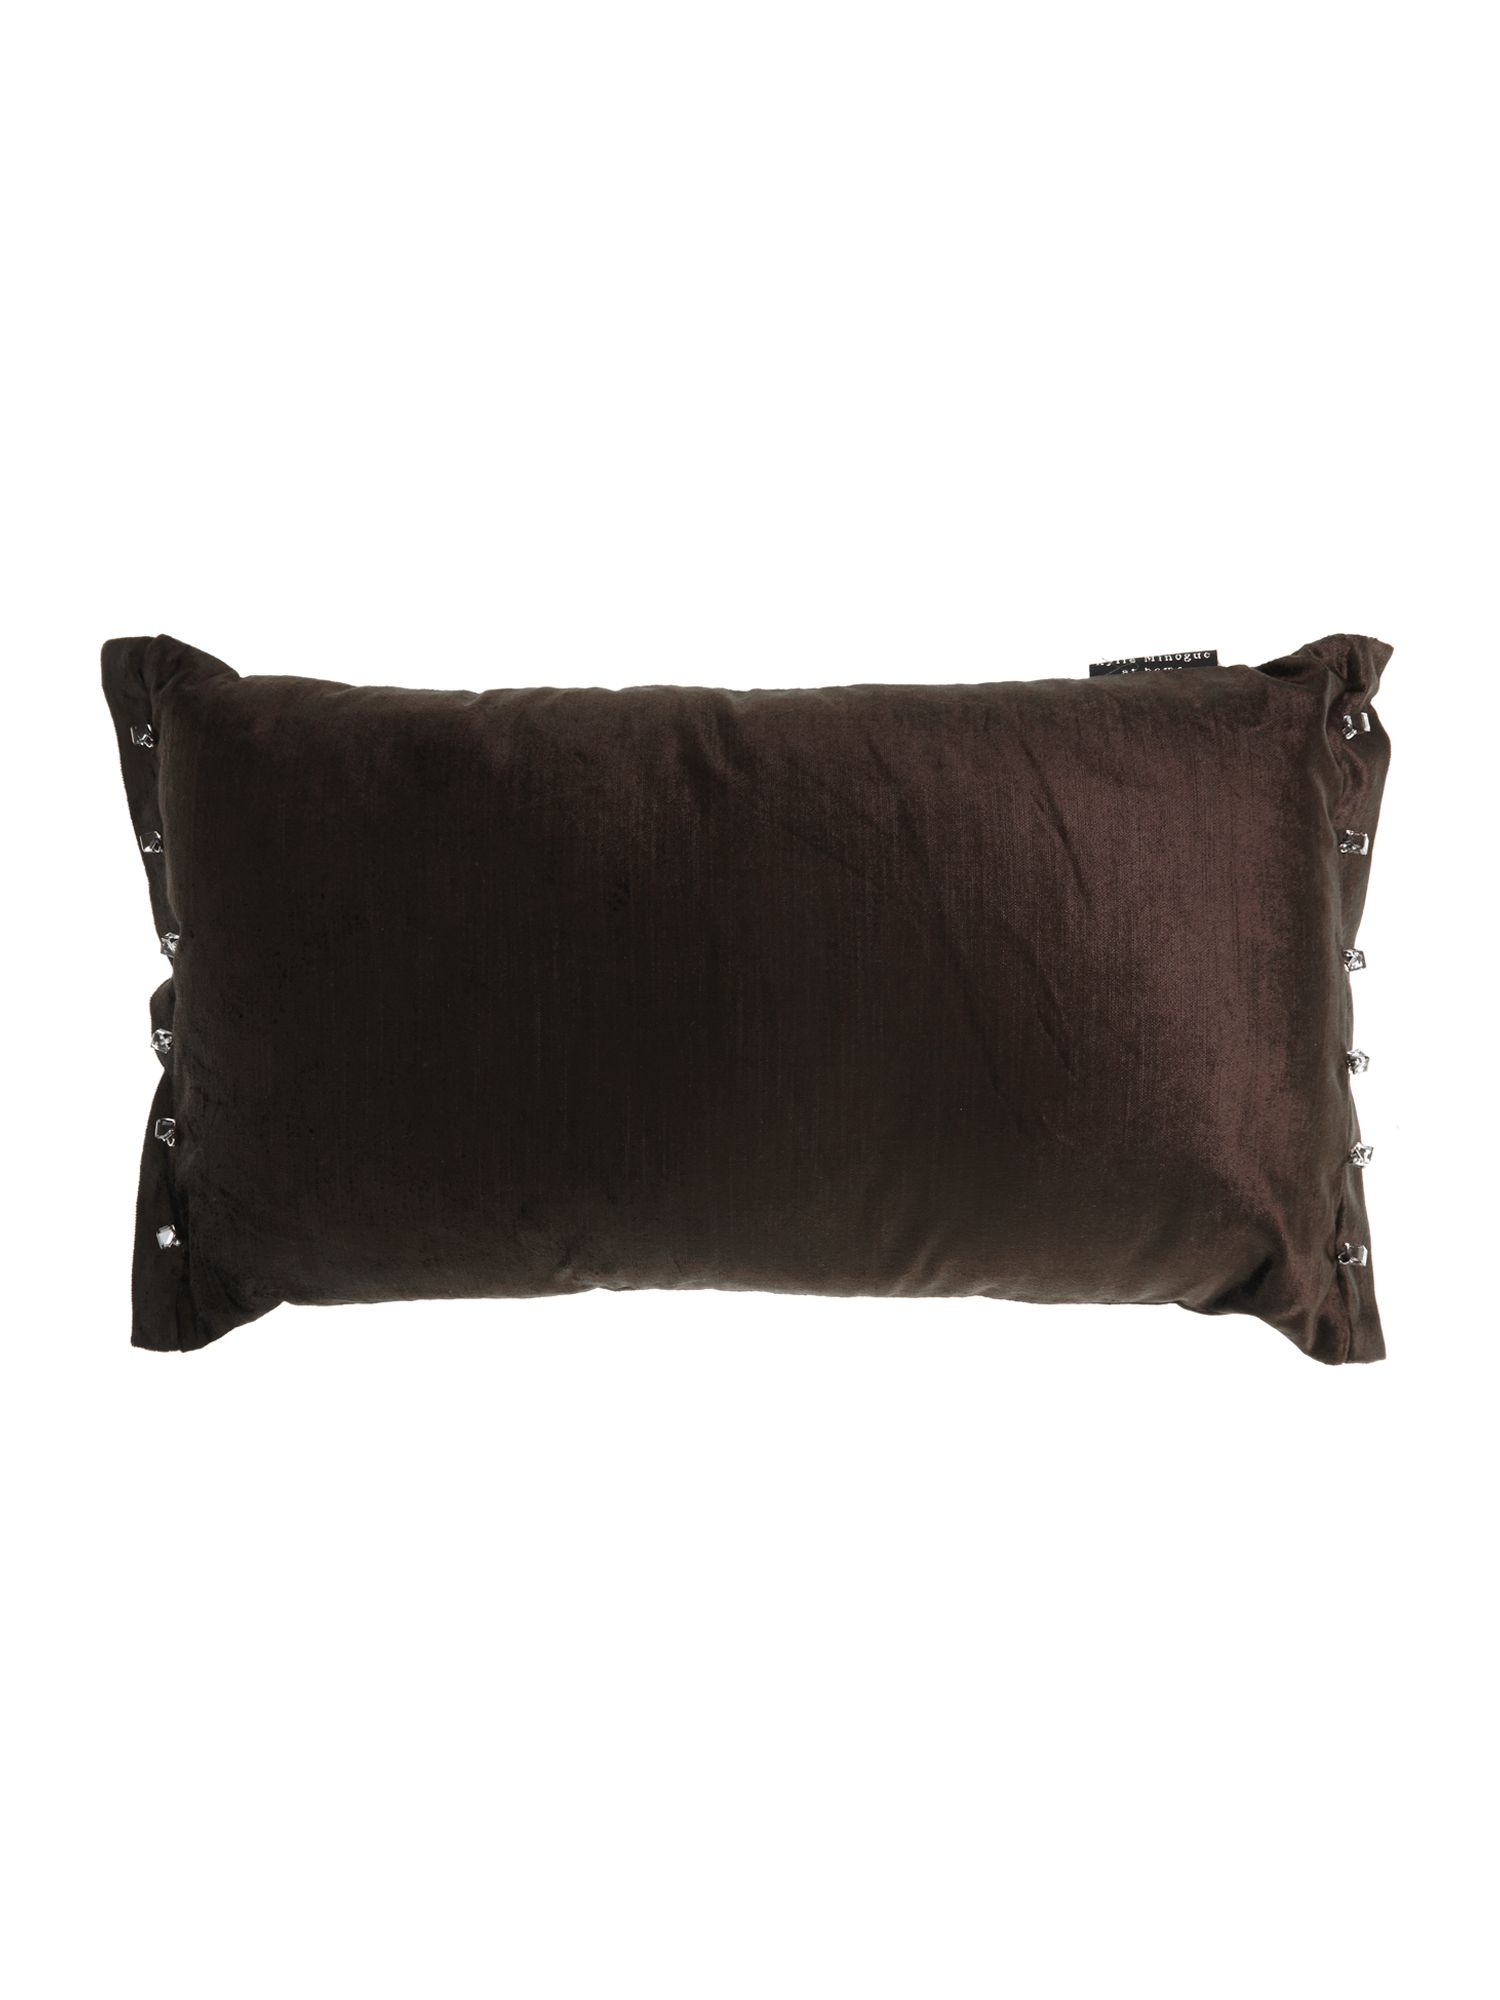 Cube cocoa cushion 30x50